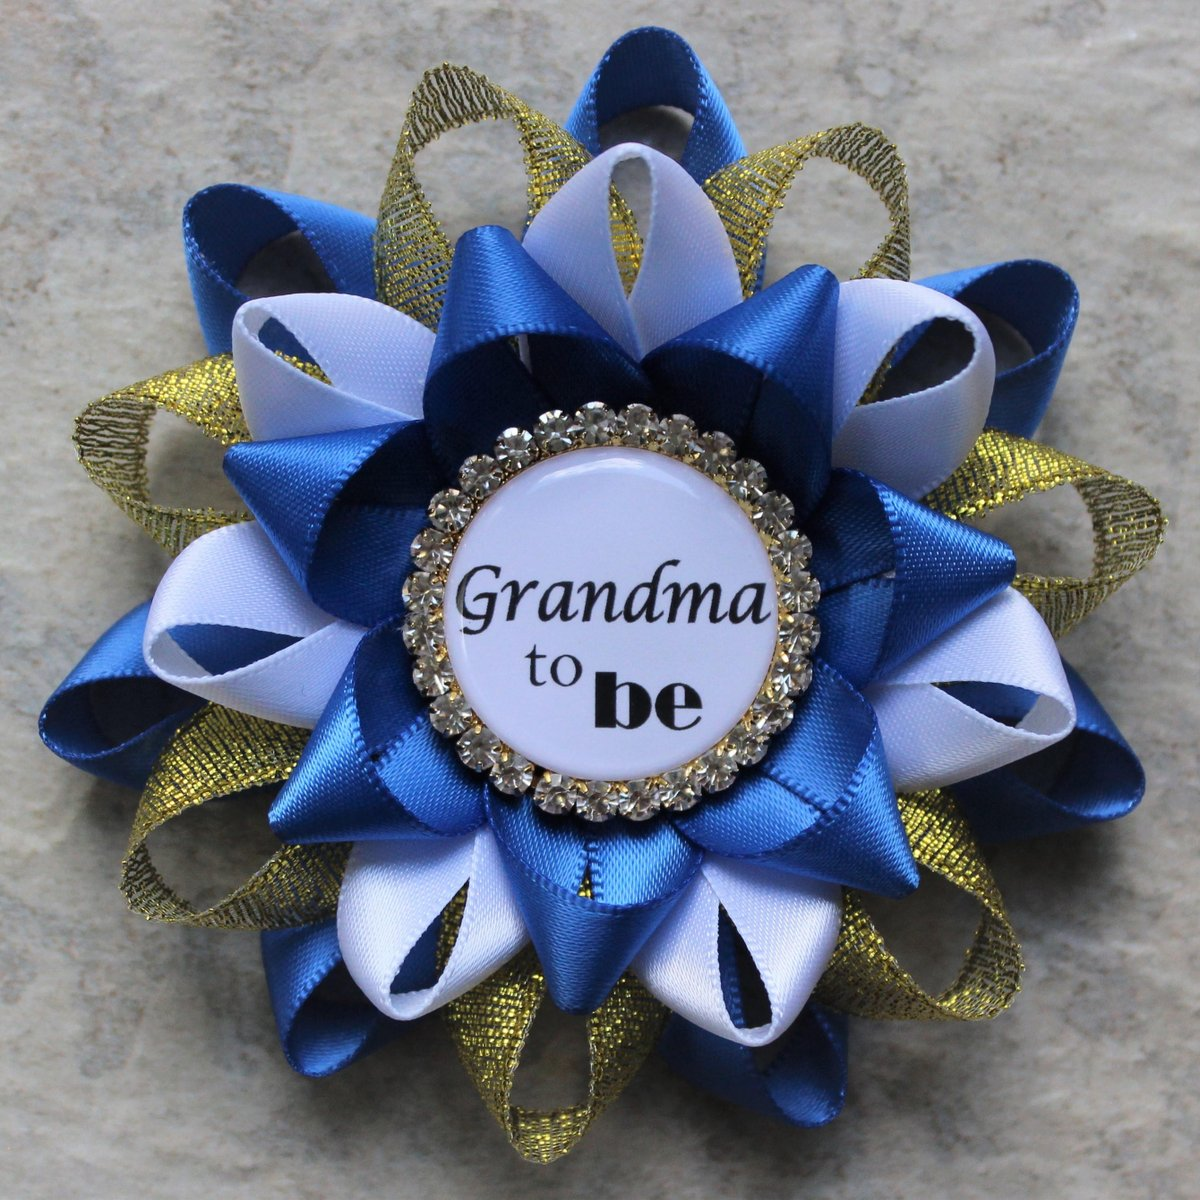 Royal Baby Shower Decorations, Little Prince Baby Shower Corsage Pins, Royal Blue and Gold Baby Shower, Baby Boy Shower Favors  #etsyshop #etsy #smallbiz #gifts #ecommerce #shopping #style #shopsmall